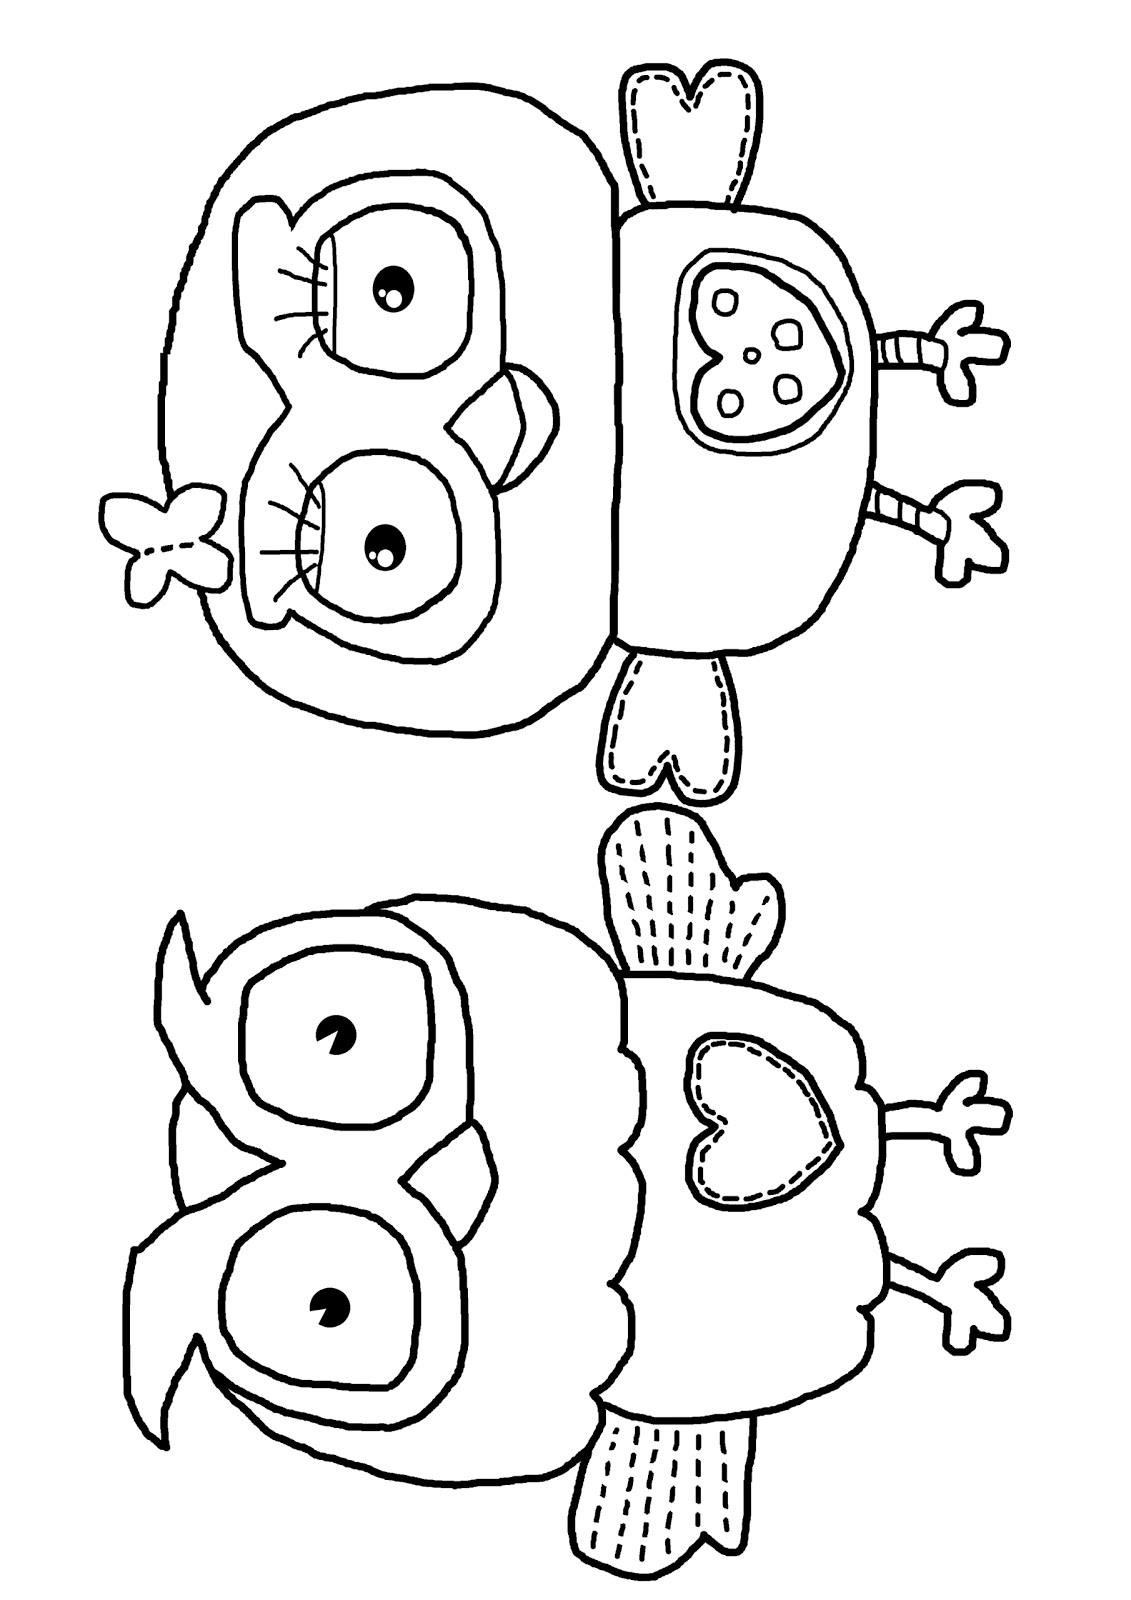 Ha halloween coloring pages to print and cut out - 68 Best Images About Children Colouring On Pinterest Mandala Coloring Markers And Coloring Pages